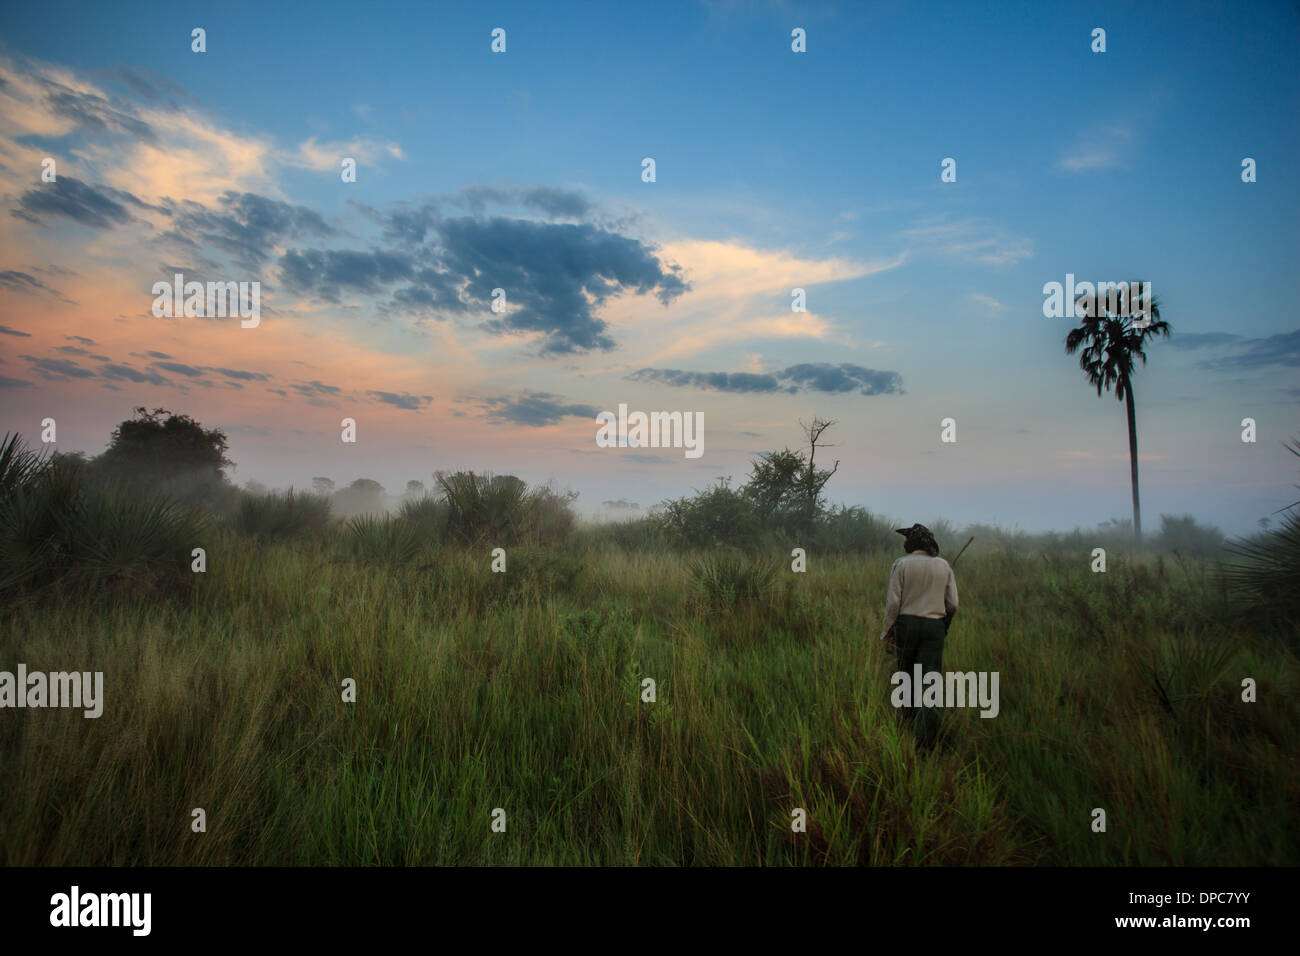 Native guide enjoys walk in wetlands as sky changes colors quickly with sunrise in Okavanga Delta, Botswana, Africa - Stock Image